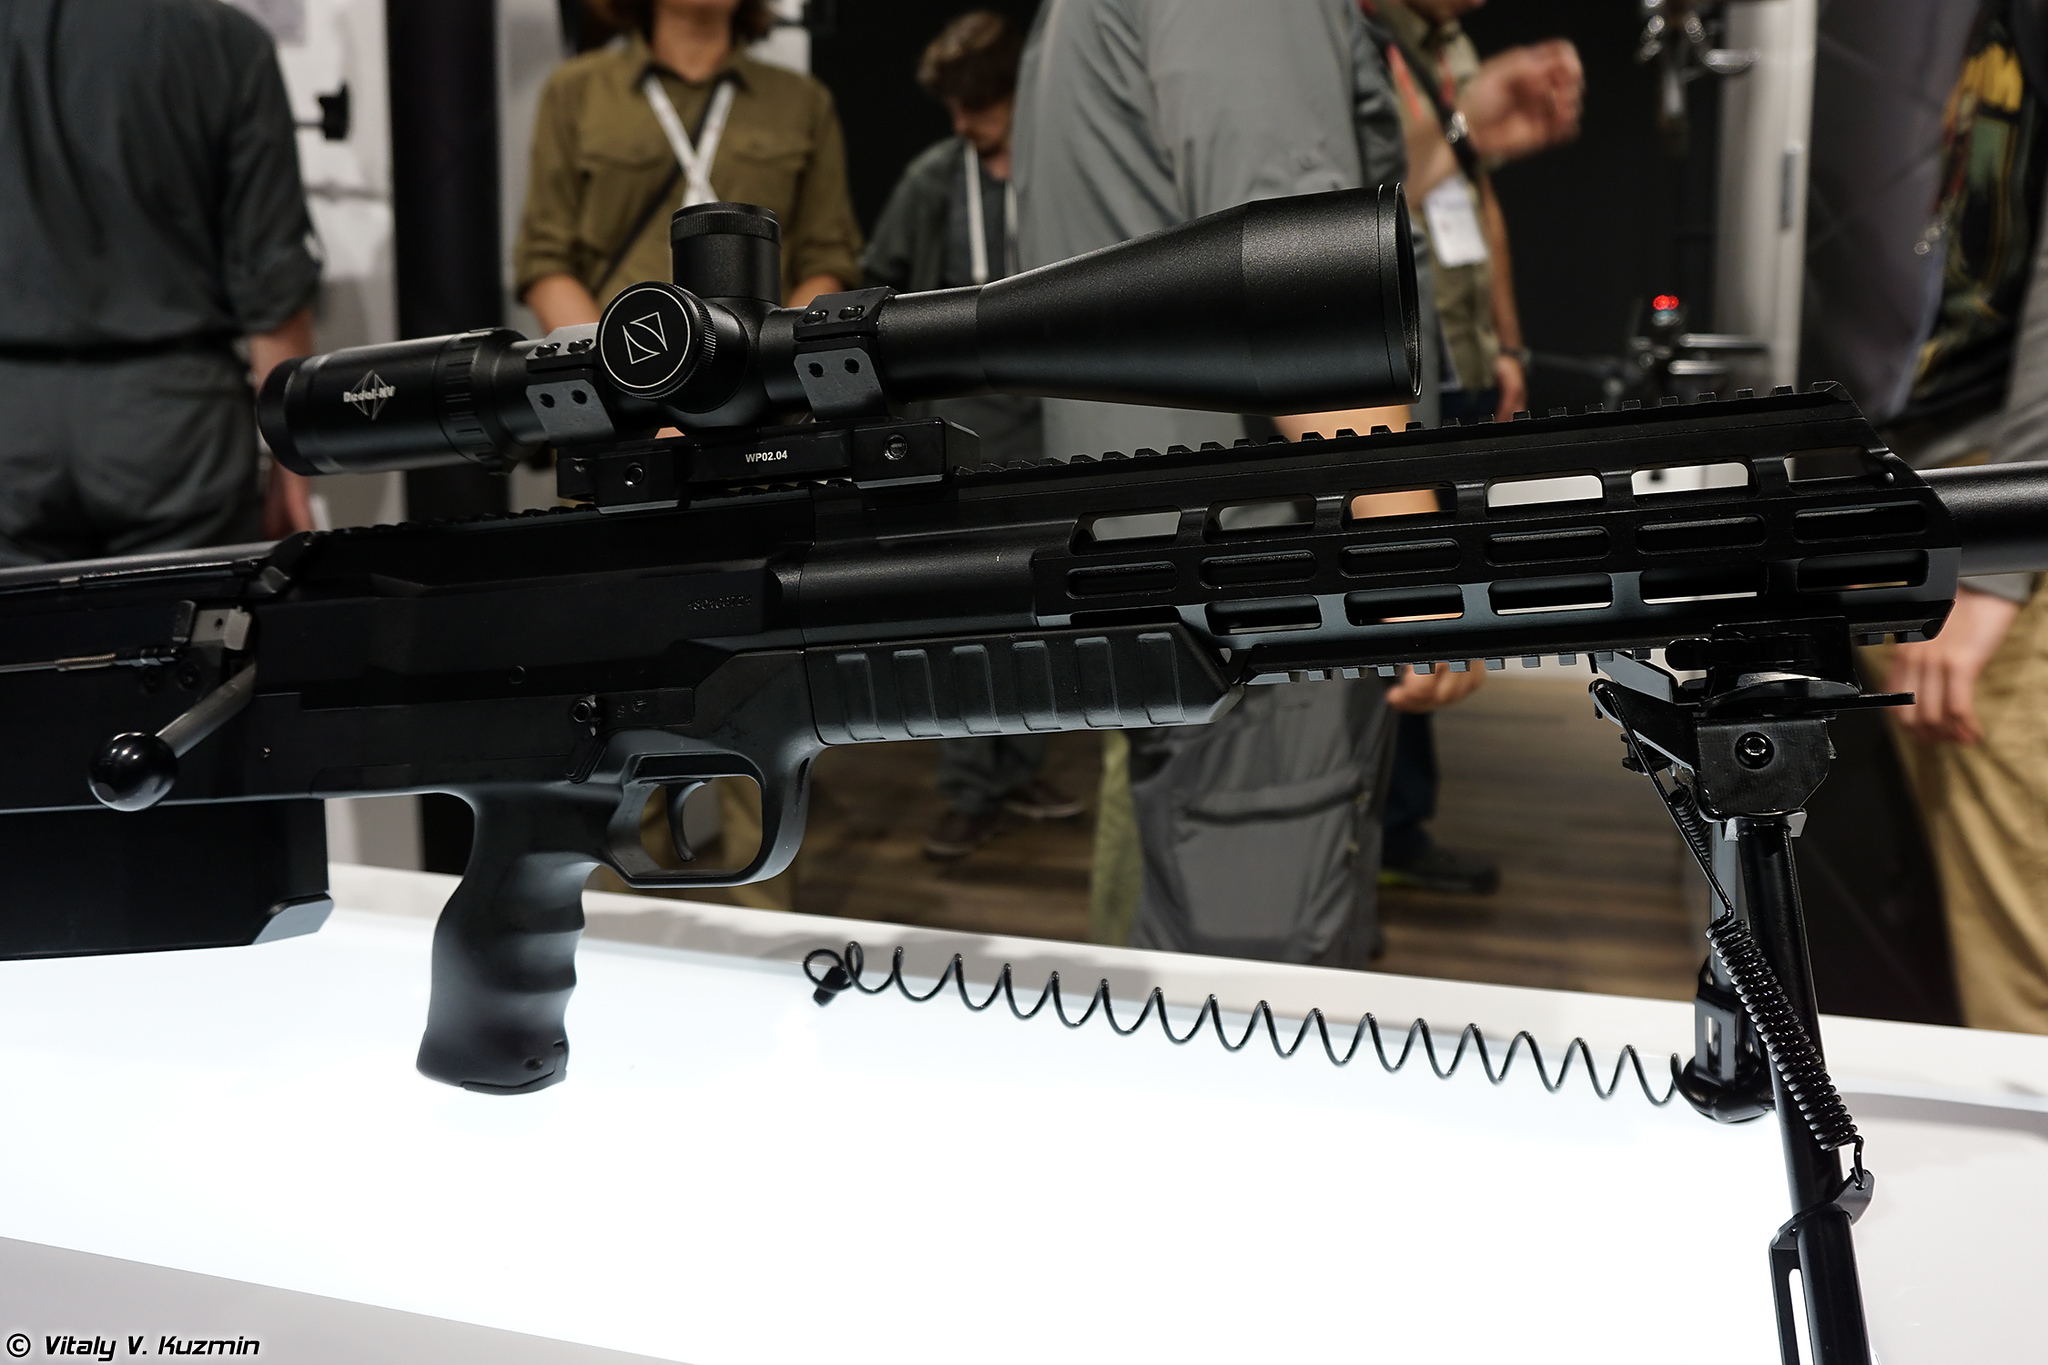 Russian Assault Rifles & Machine Guns Thread: #2 - Page 9 Army2019Pavilions-032-X4